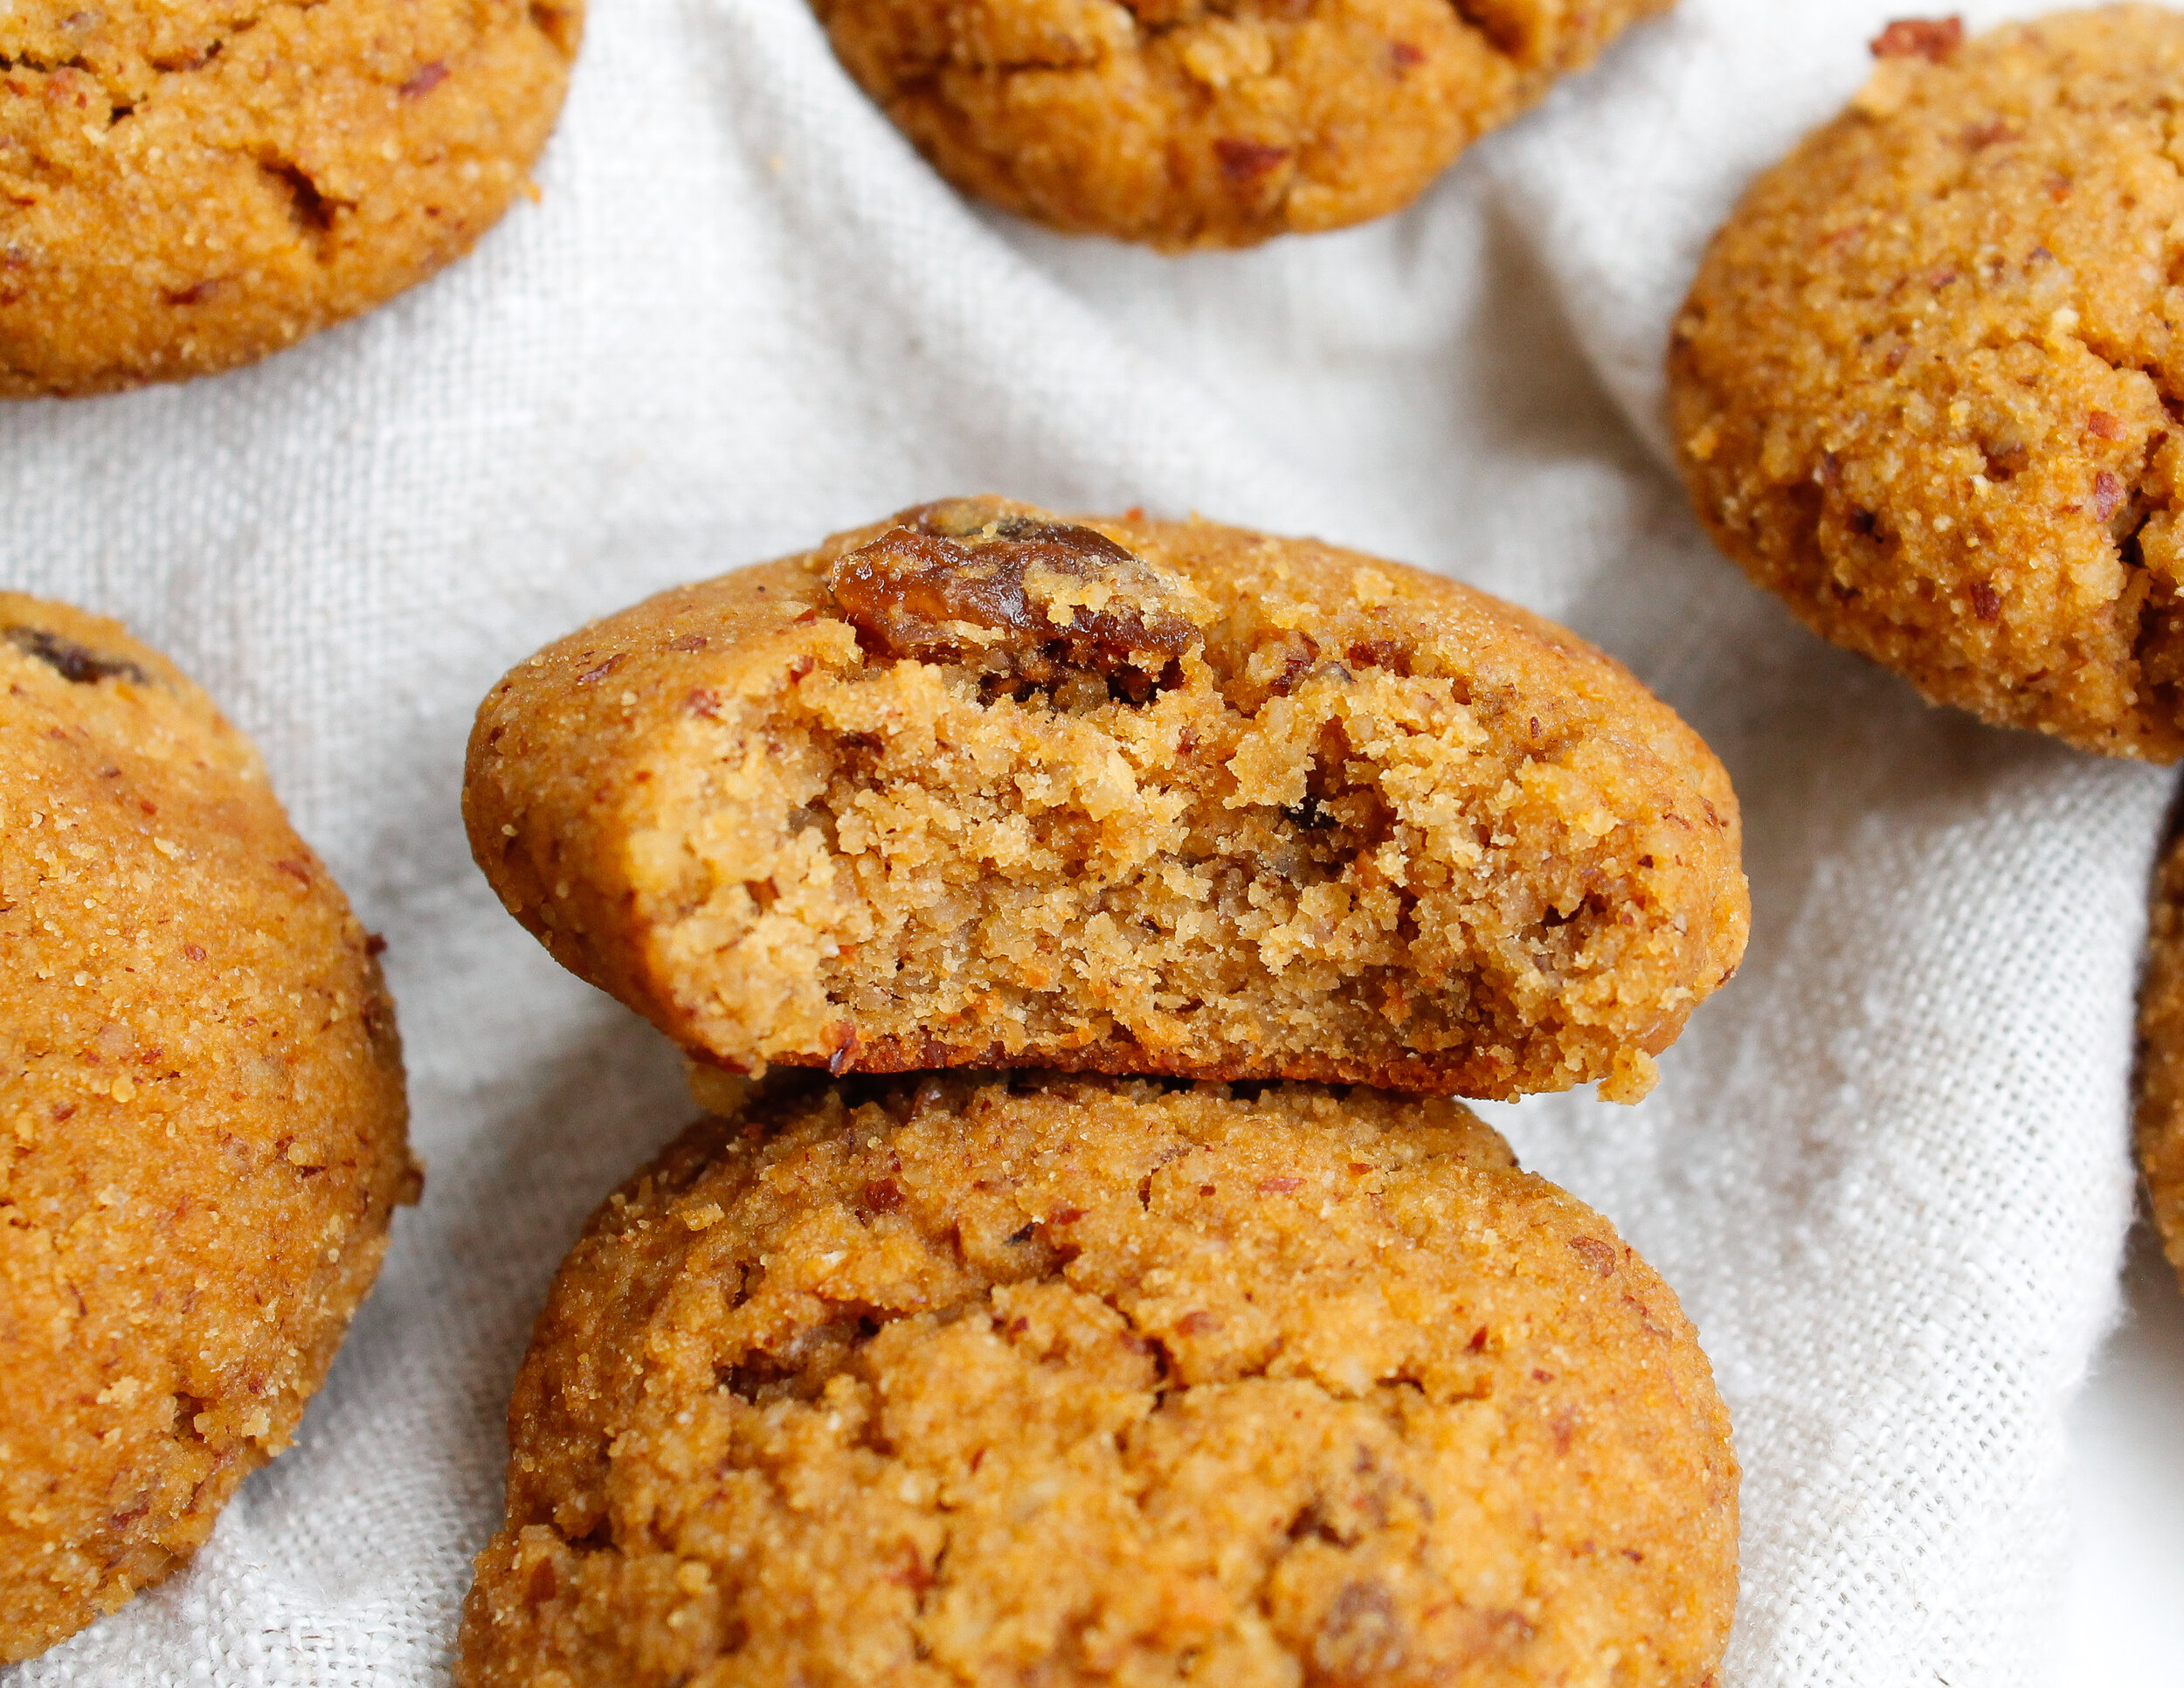 Paleo Pumpkin Fig Cookies    these paleo pumpkin cookies are also gluten free, dairy free, refined sugar free AND specific carbohydrate diet friendly! They're made with wholesome REAL ingredients like almond flour, nut butter and honey. The dried figs give them a little twist and taste like seasons colliding! The perfect way to say goodbye to summer and hello to fall! #paleobaking #paleocookies #paleopumpkinrecipes    plentyandwell.com